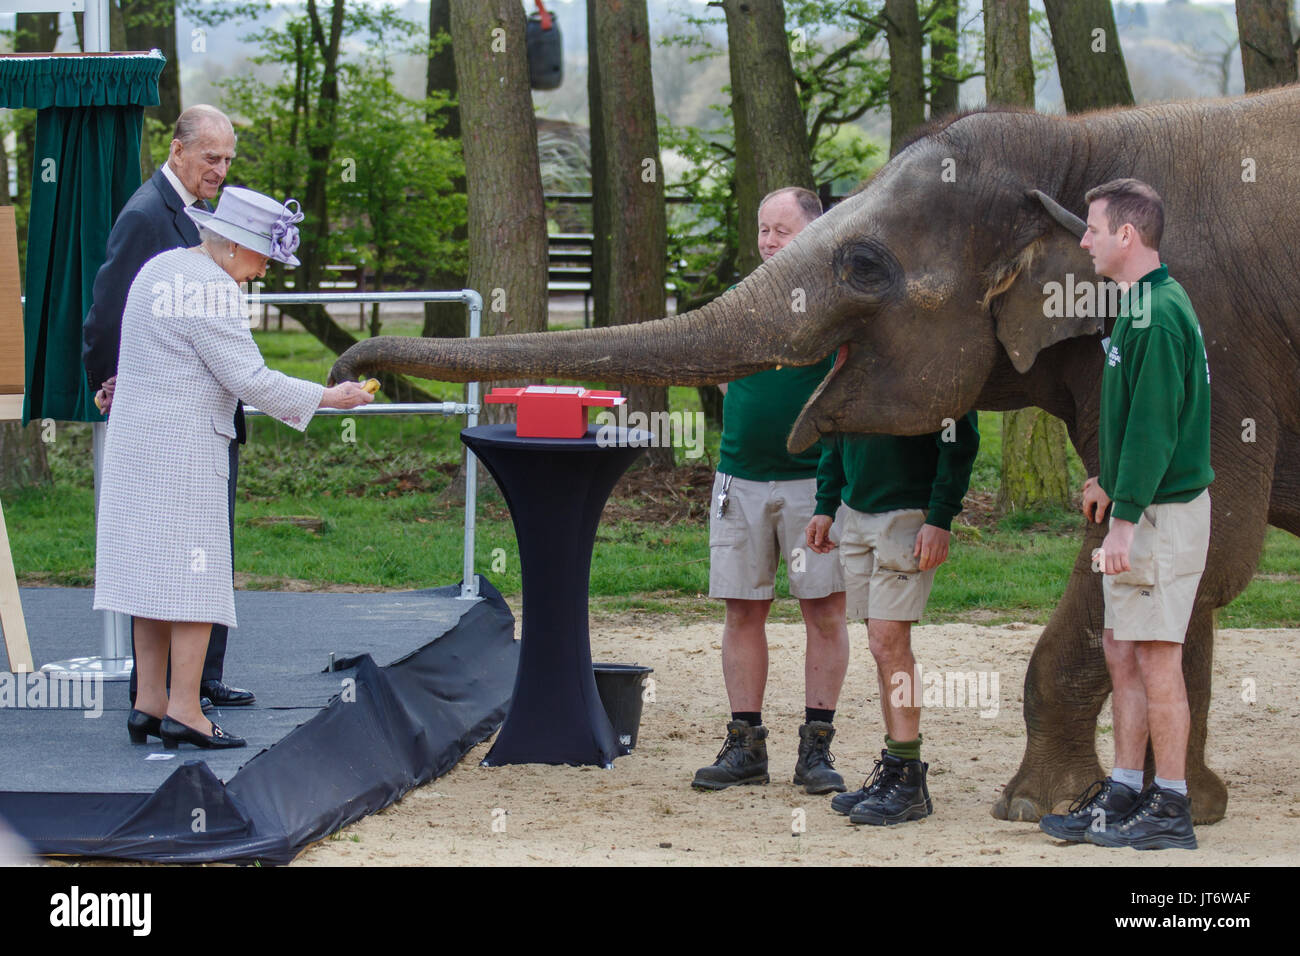 Watch The Queen Helps Feed Elephants at Whipsnade Zoo video